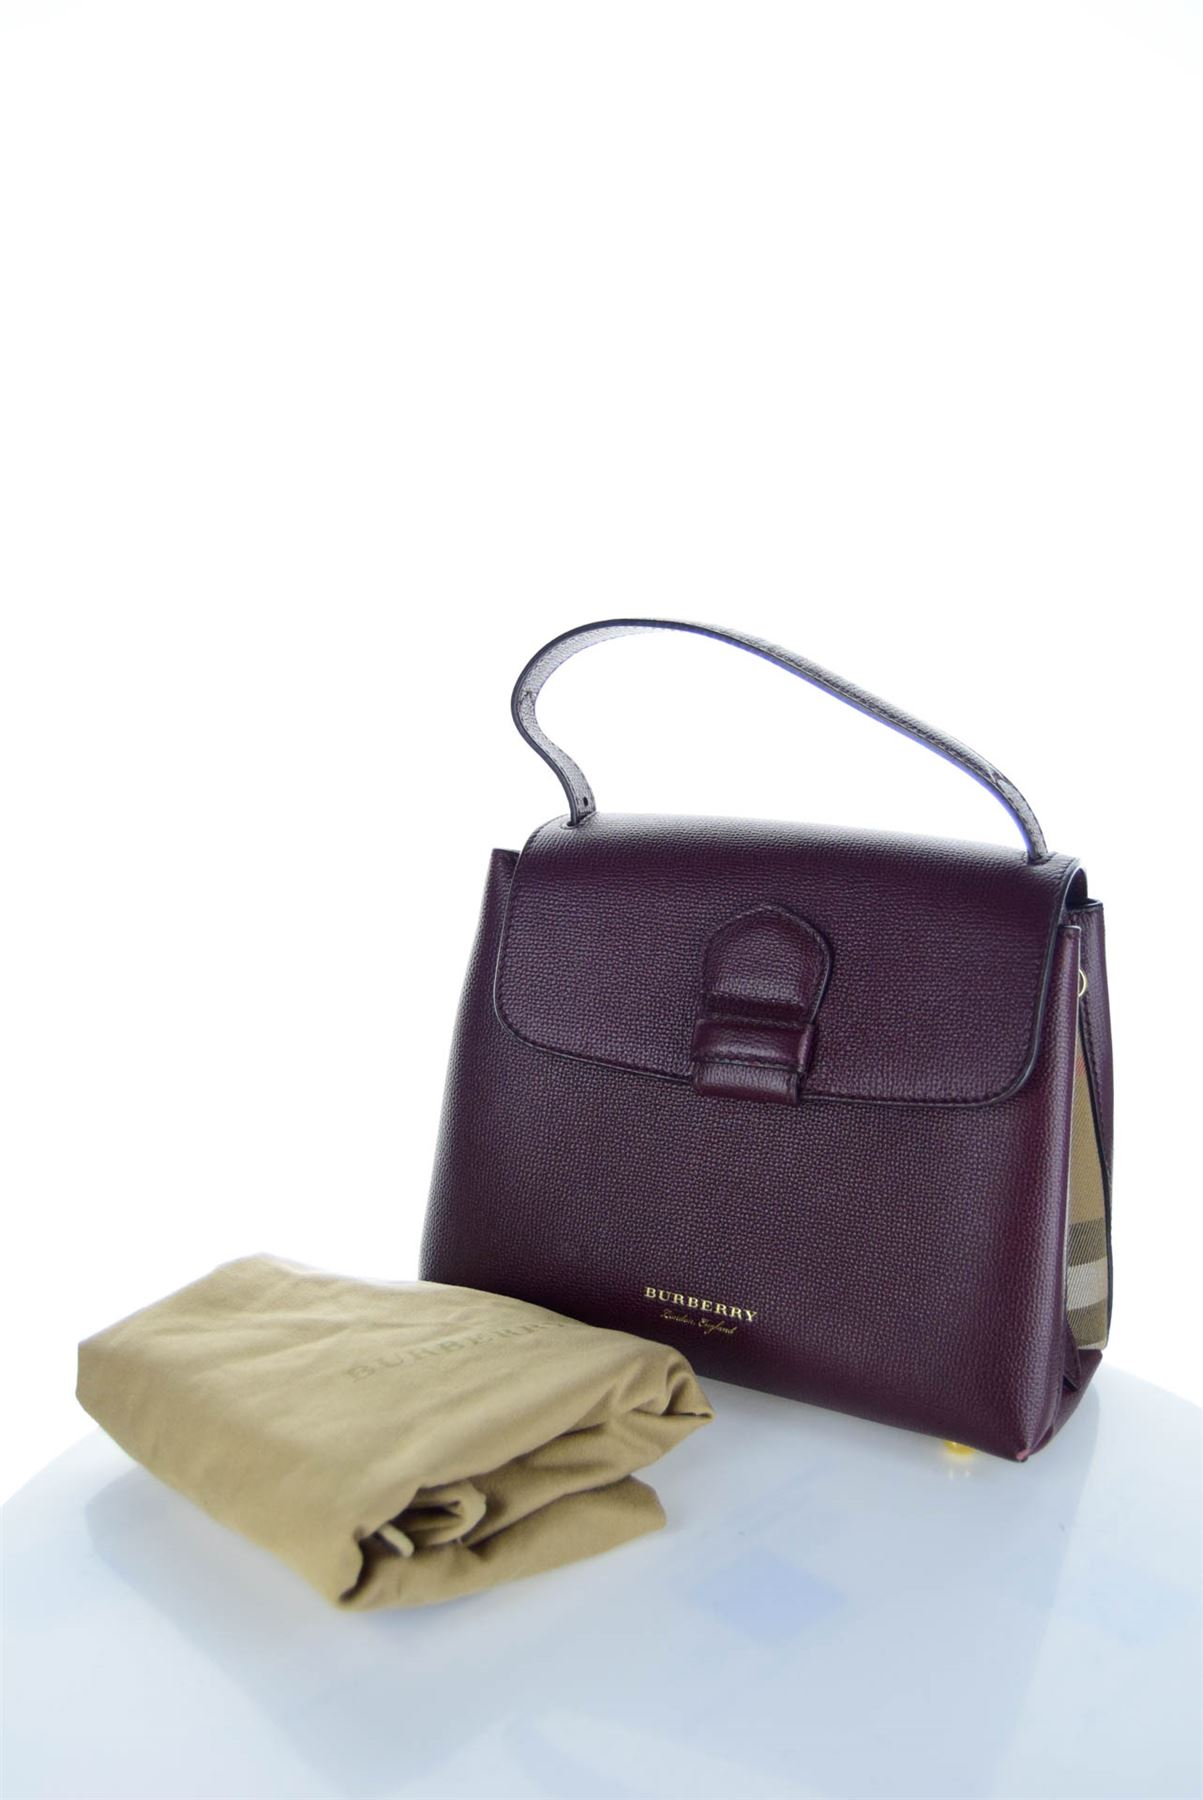 BURBERRY Camberley Derby Borsa in pelle viola f0804be3cbf